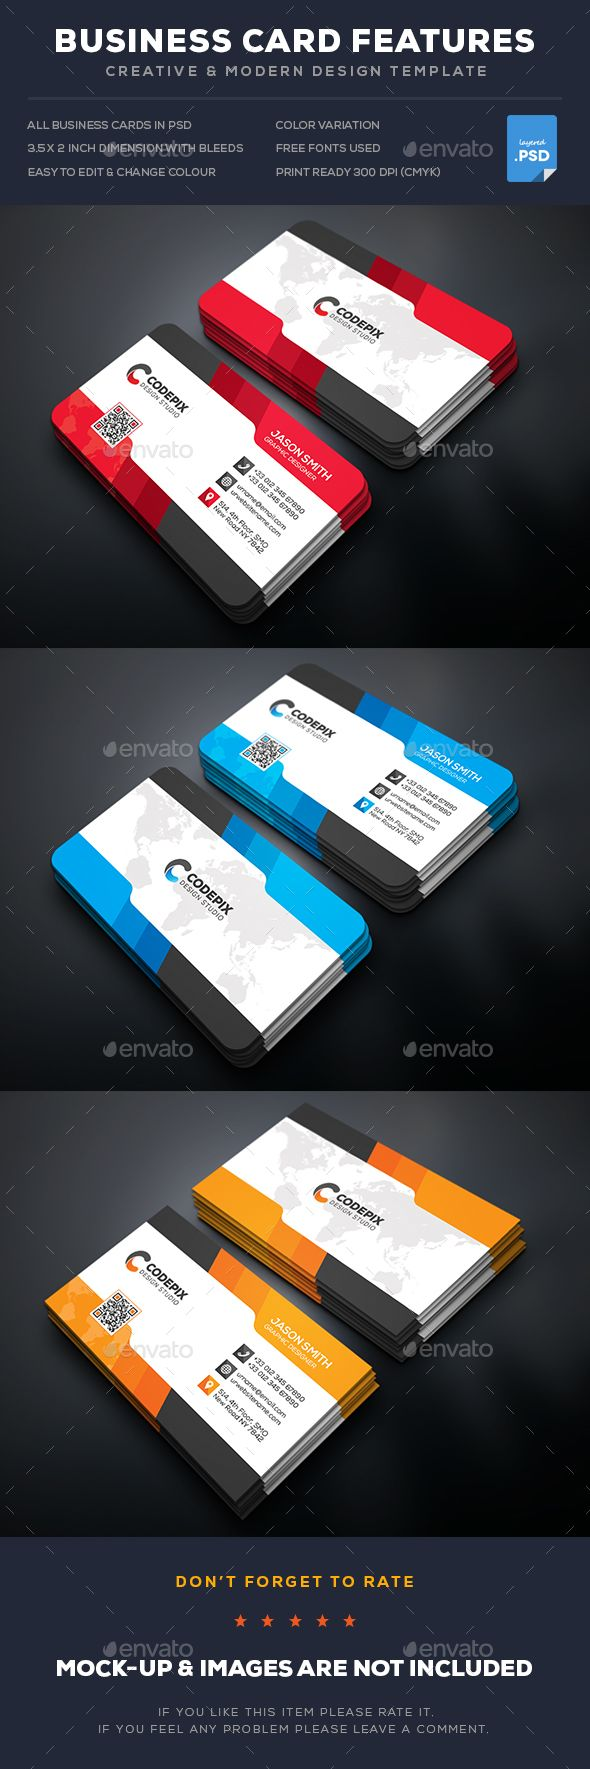 Shade Business Card Photoshop Psd Colors Blue Available Here Https Graphicriver Net Item Printing Business Cards Business Cards Business Card Design